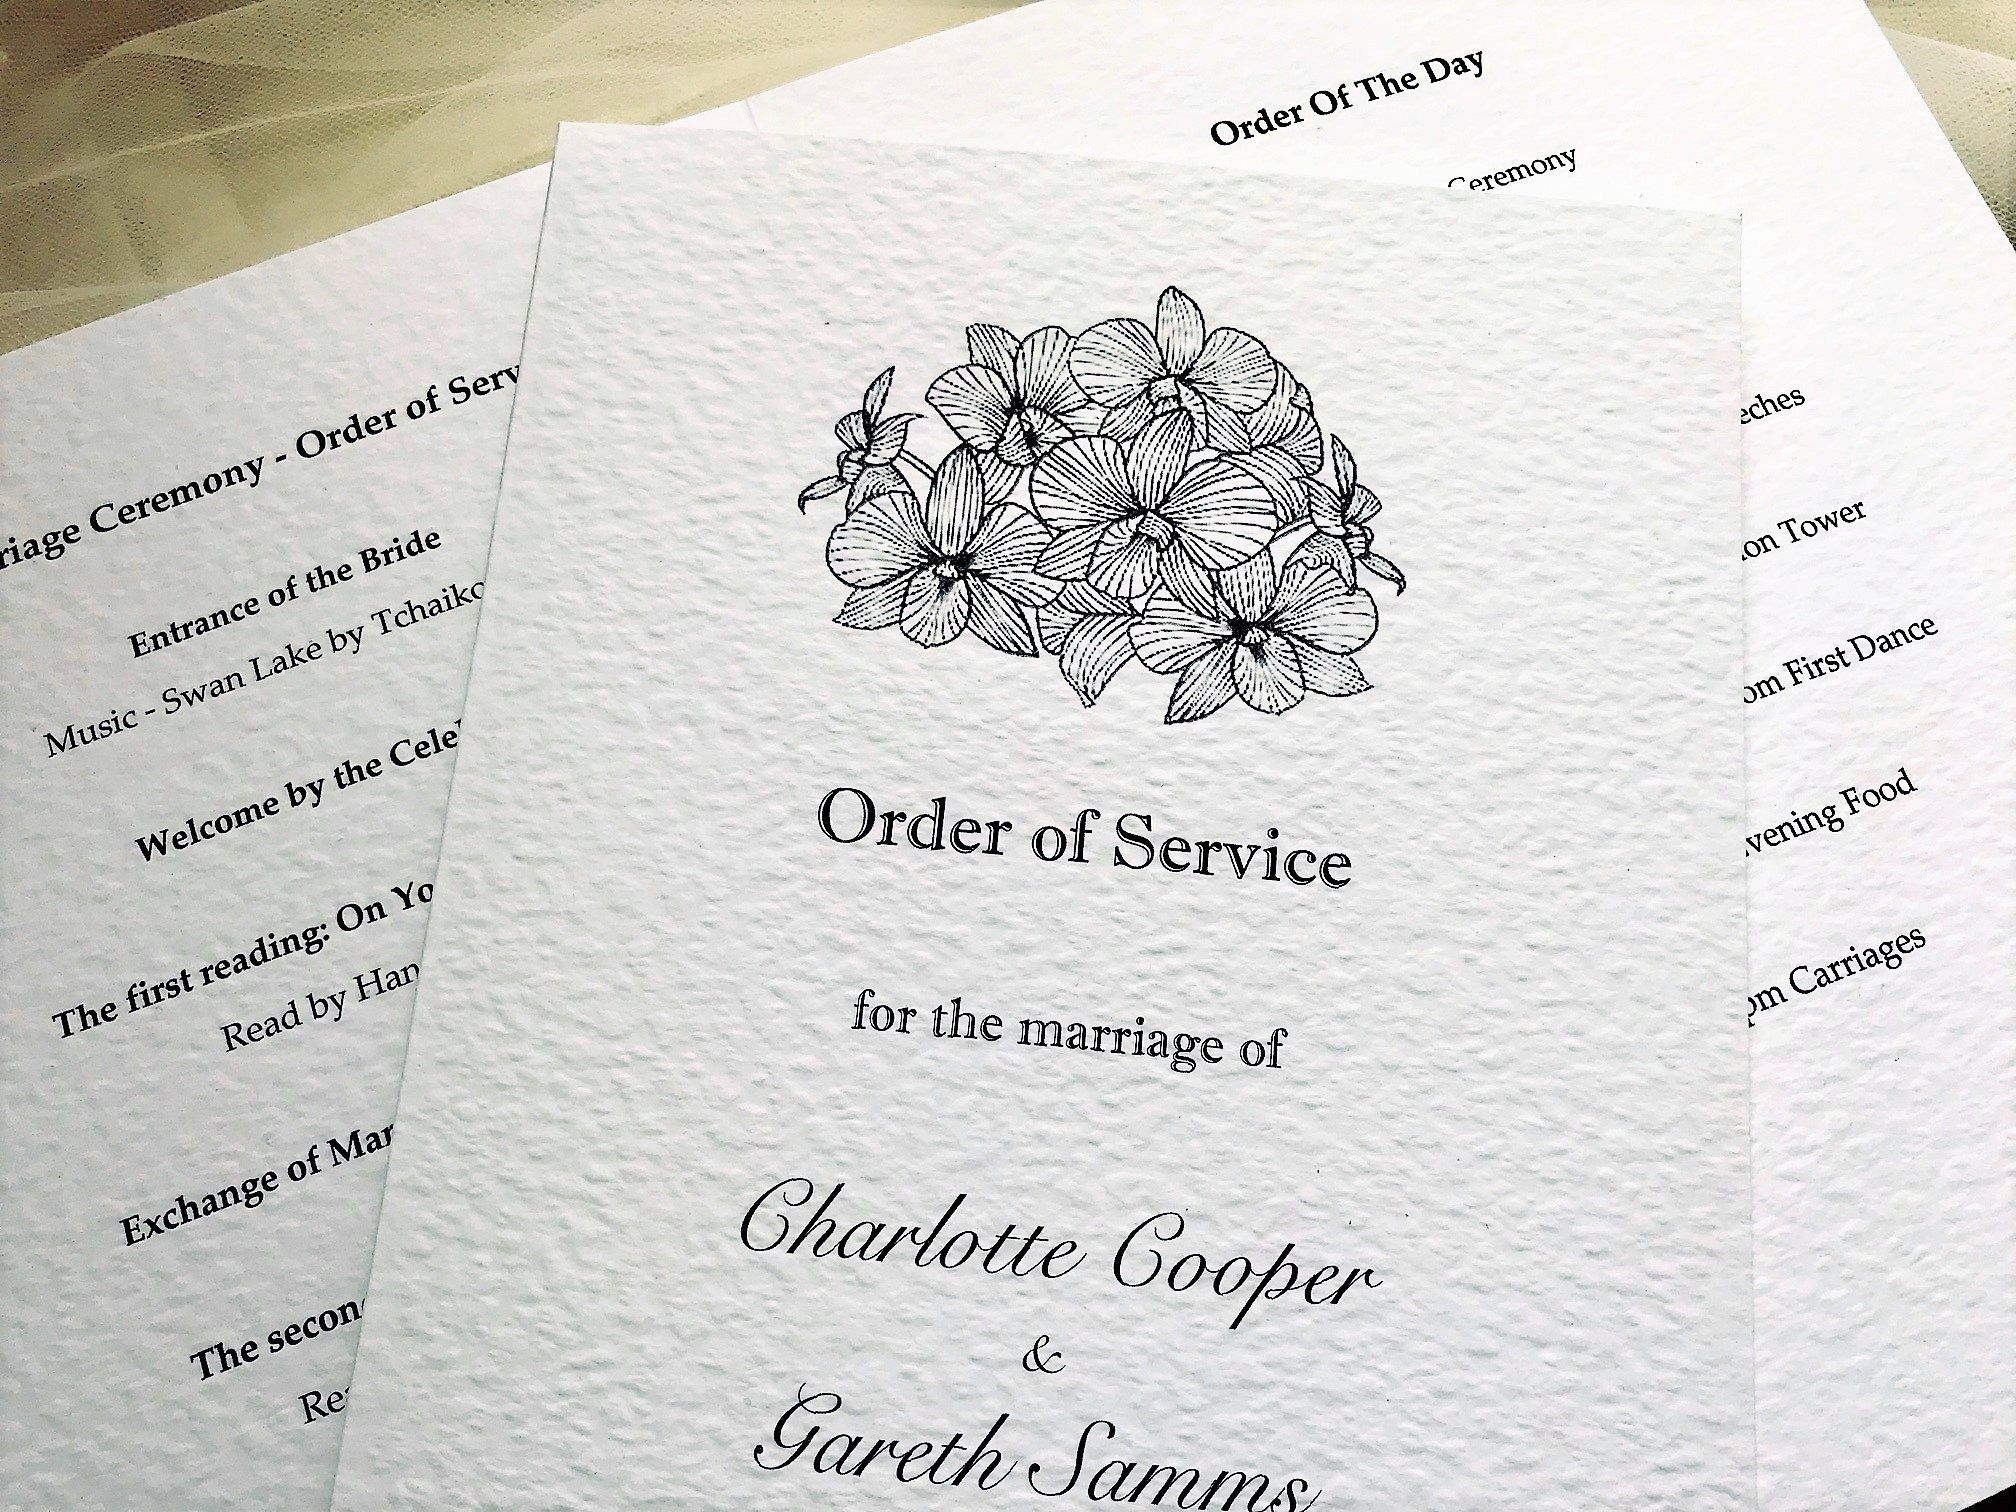 004 Fearsome Church Wedding Order Of Service Template Uk High Def Full